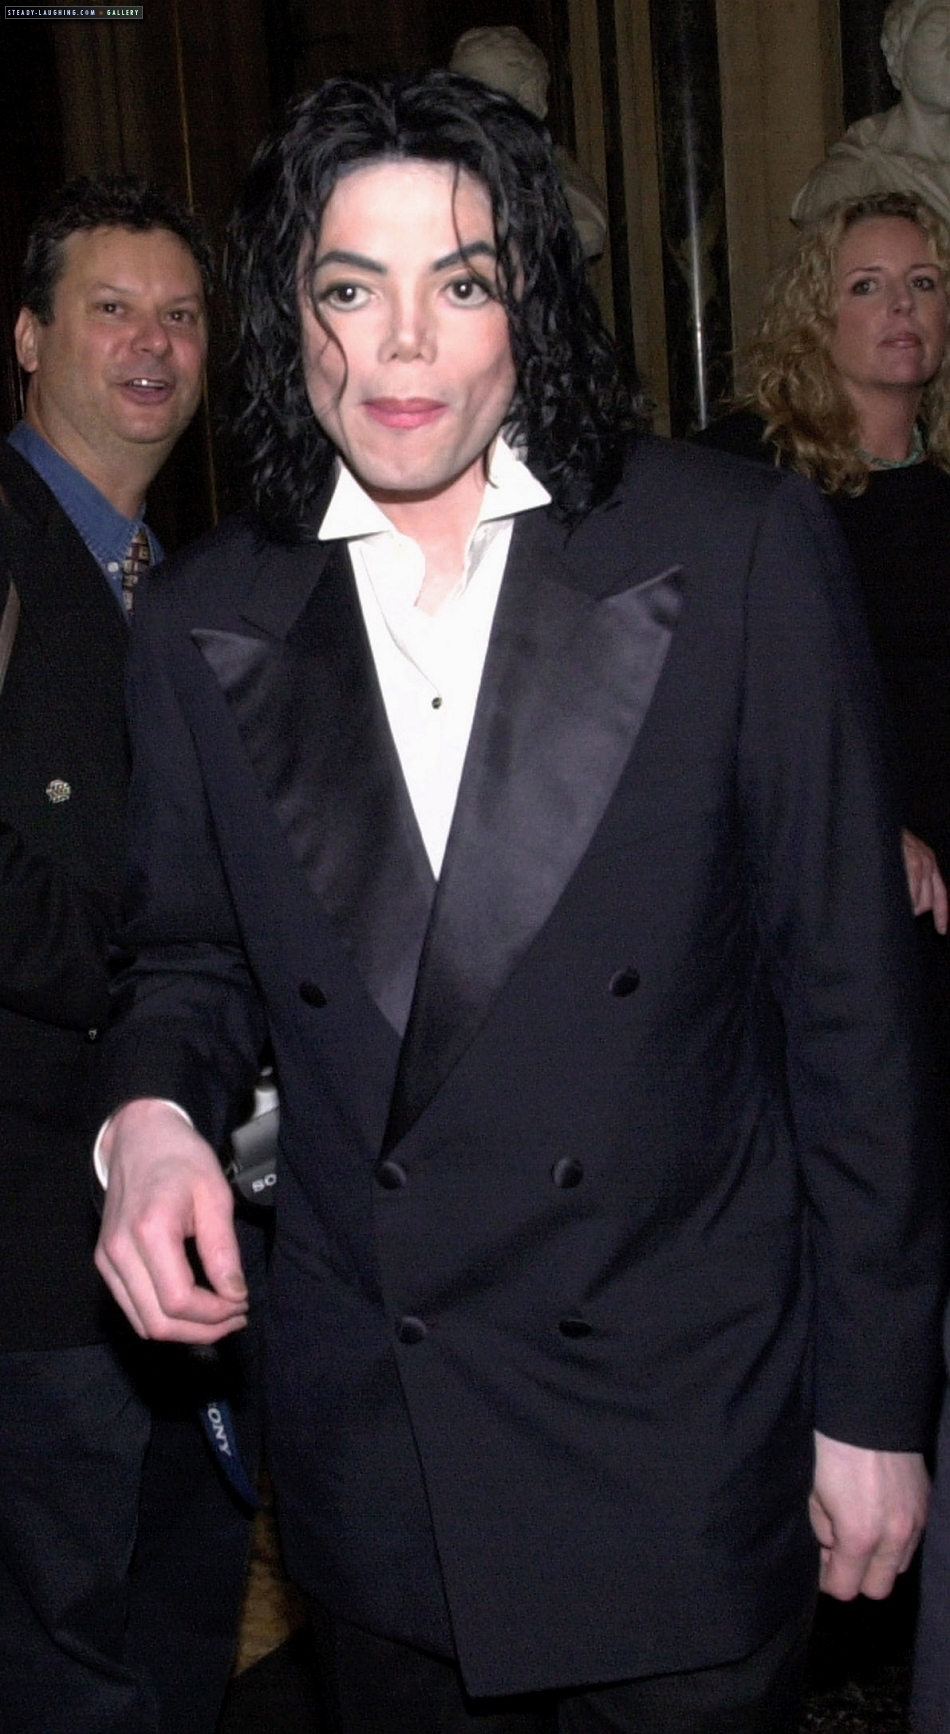 MJ - The Sexy 2000s